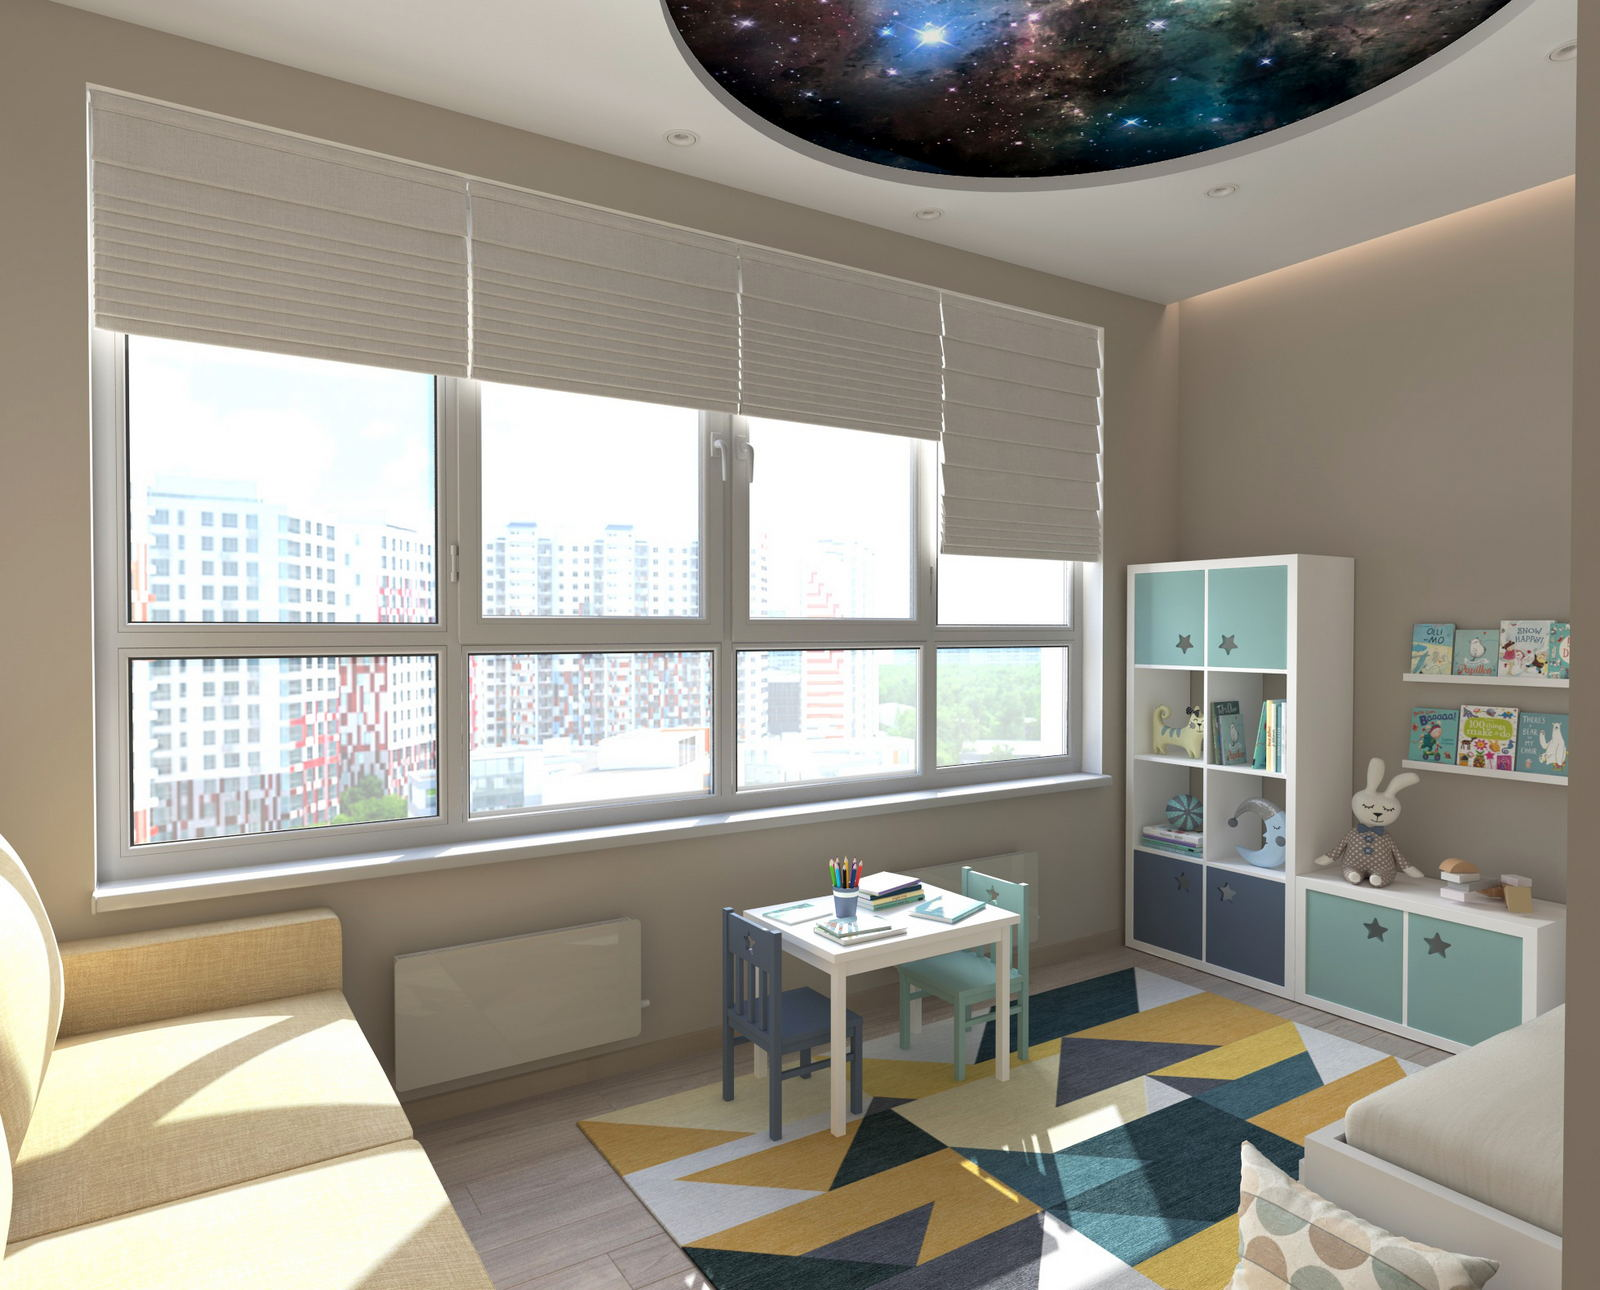 t_Kids_room_View_001.jpg